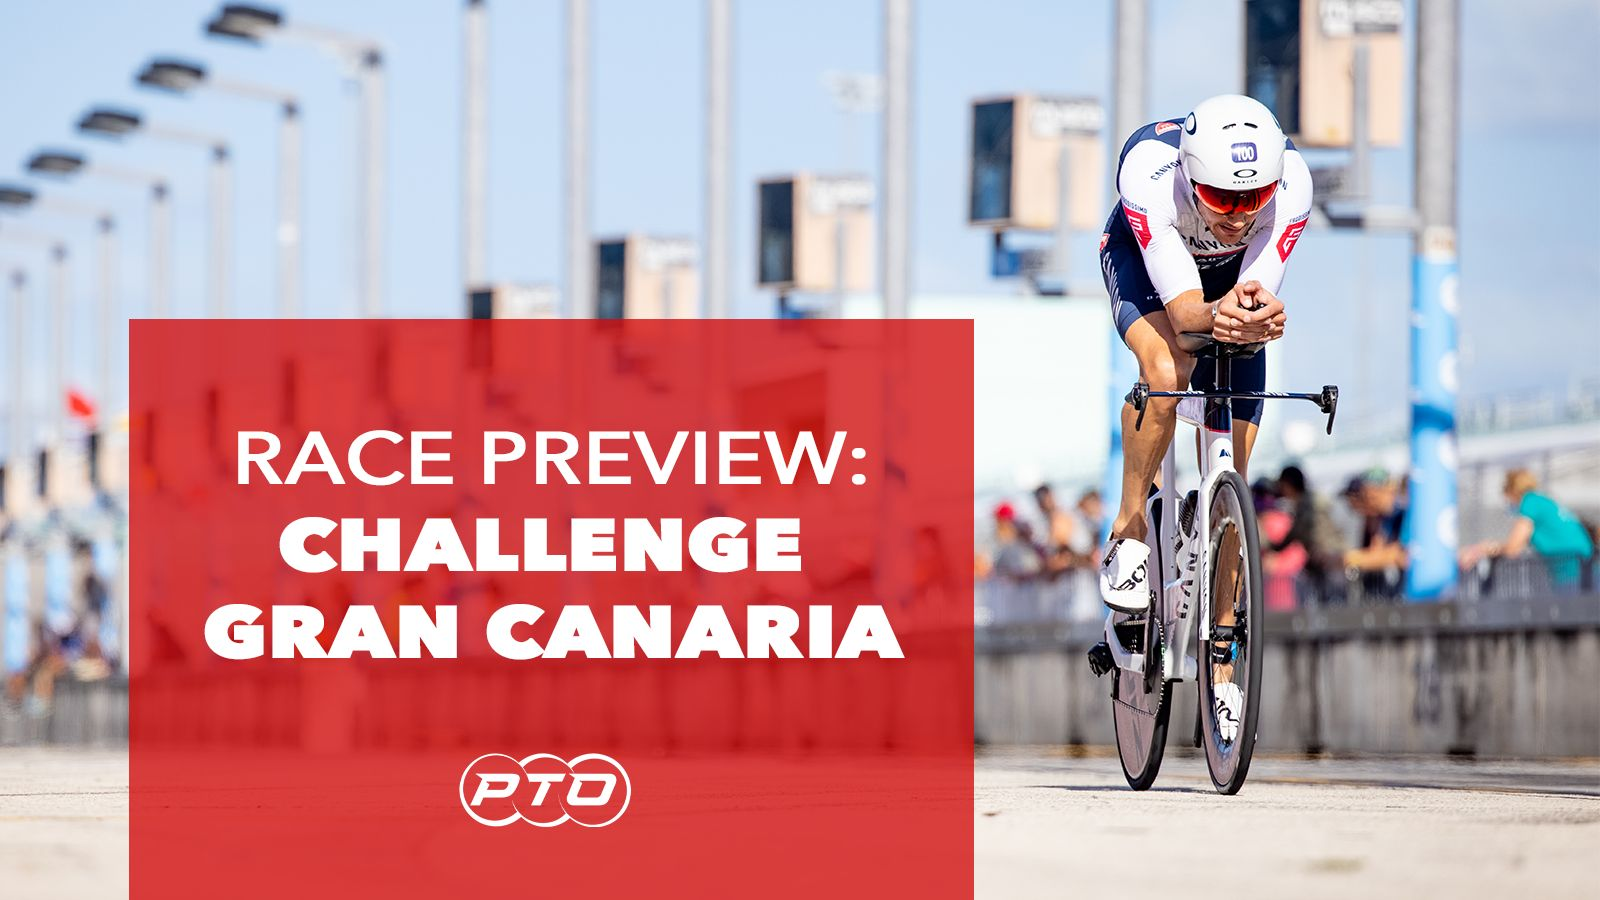 Race Preview: Challenge Gran Canaria